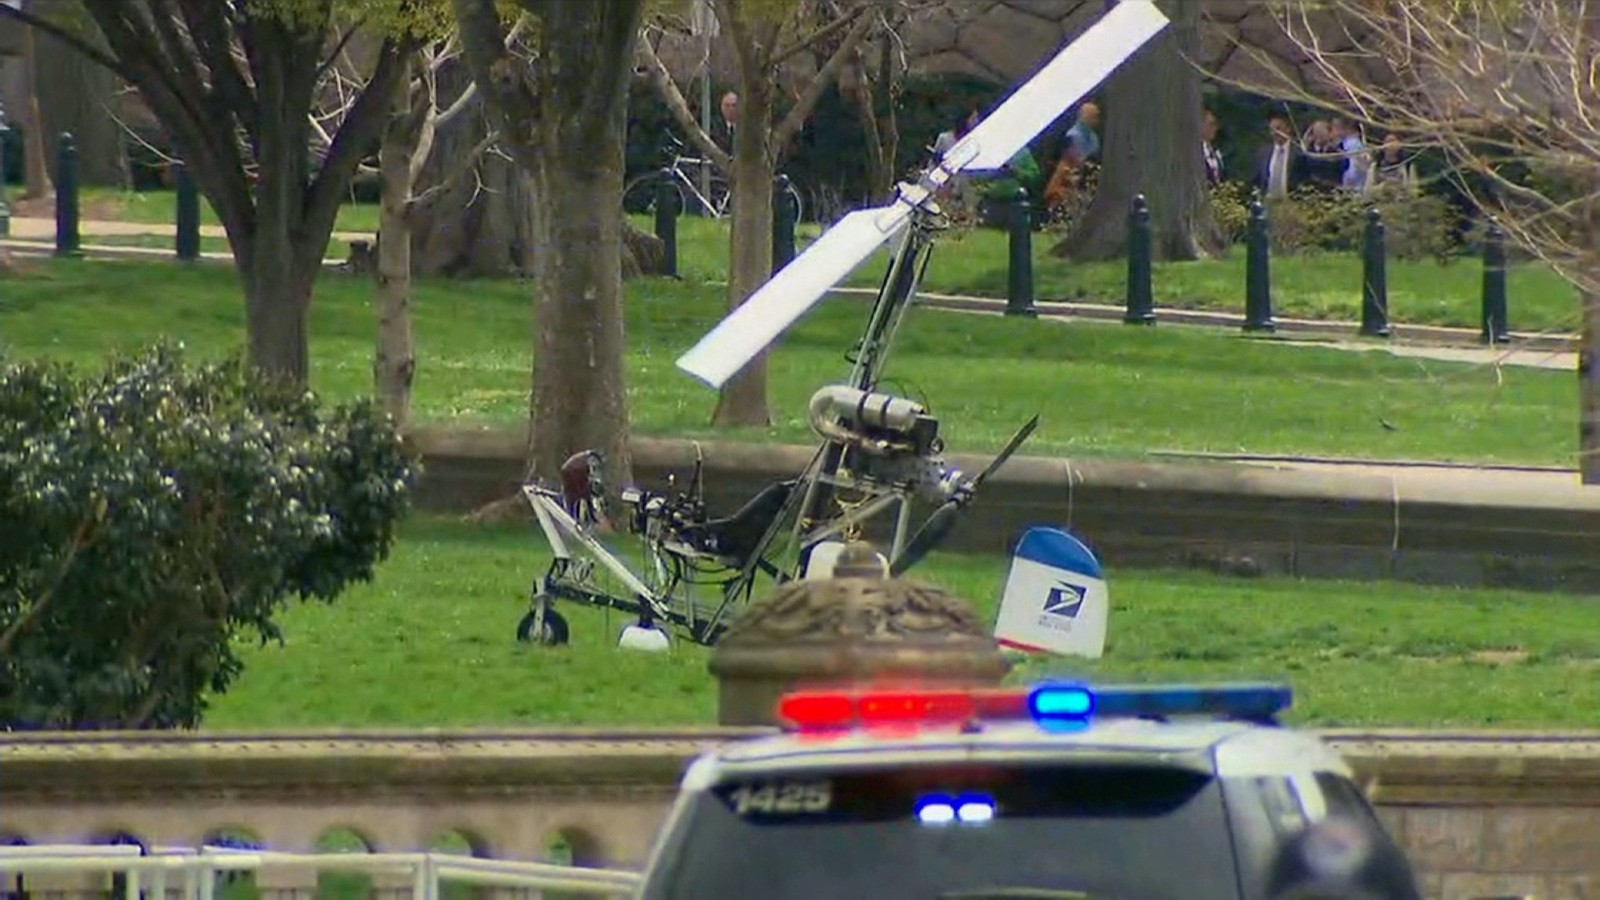 Small aircraft landing sparks Capitol security scramble